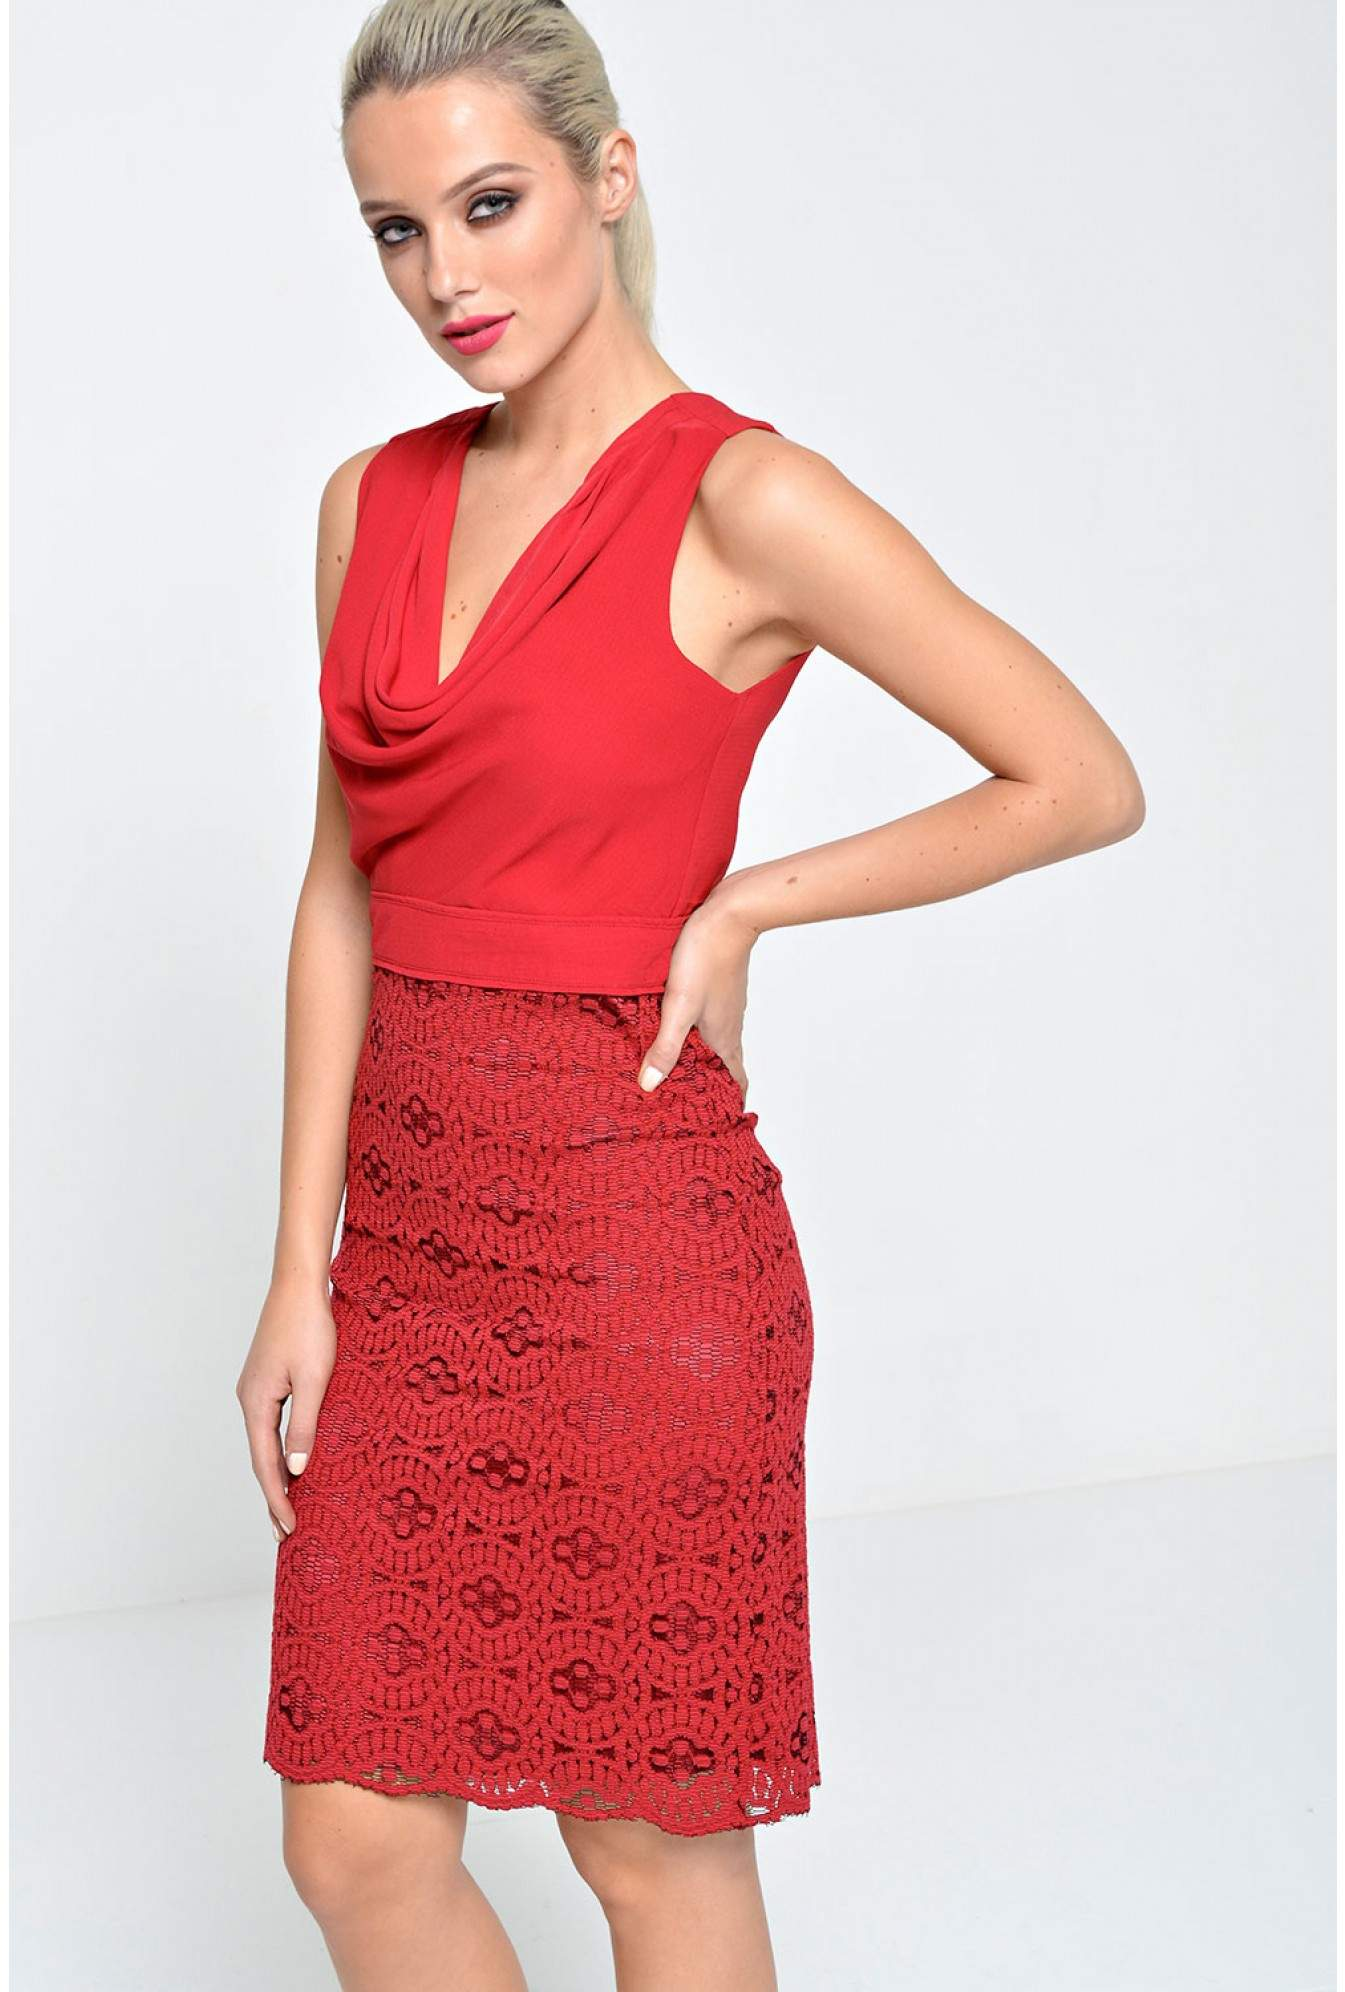 55db5d9502 Marc Angelo Catya Lace and Cowl Neck Dress in Deep Red